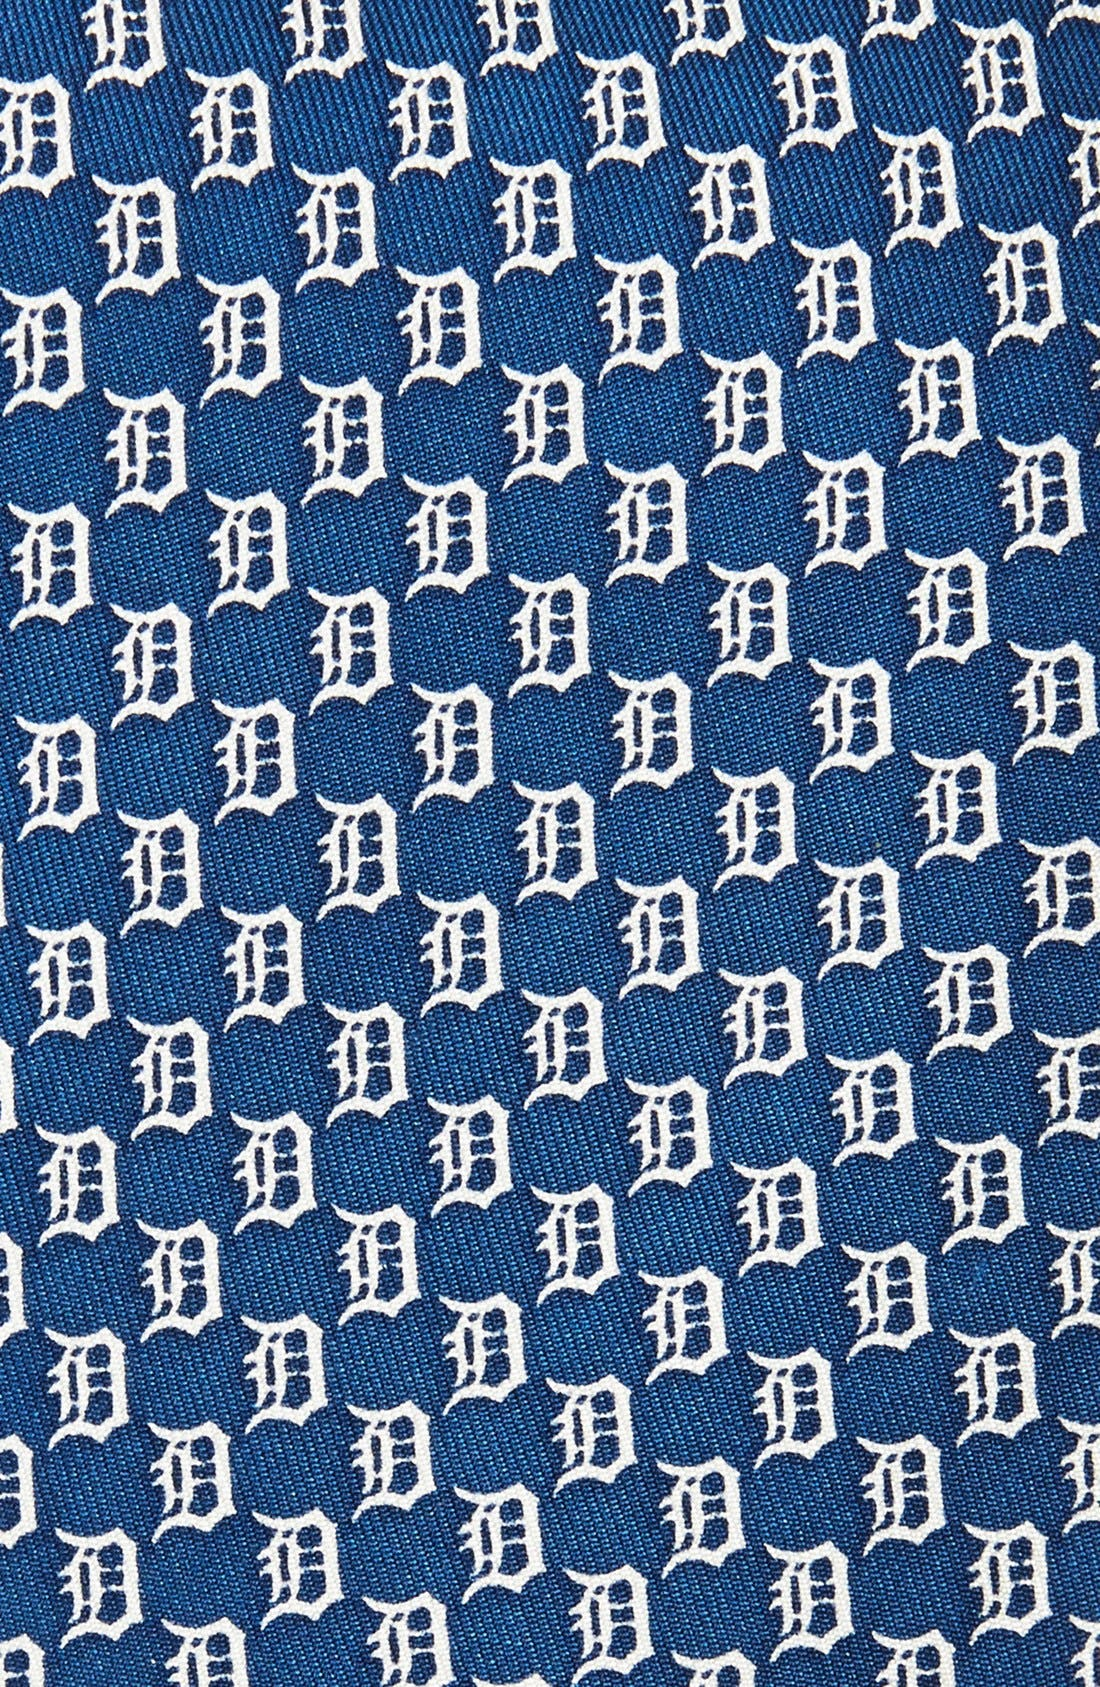 'Detroit Tigers - MLB' Woven Silk Tie,                             Alternate thumbnail 2, color,                             Vineyard Navy